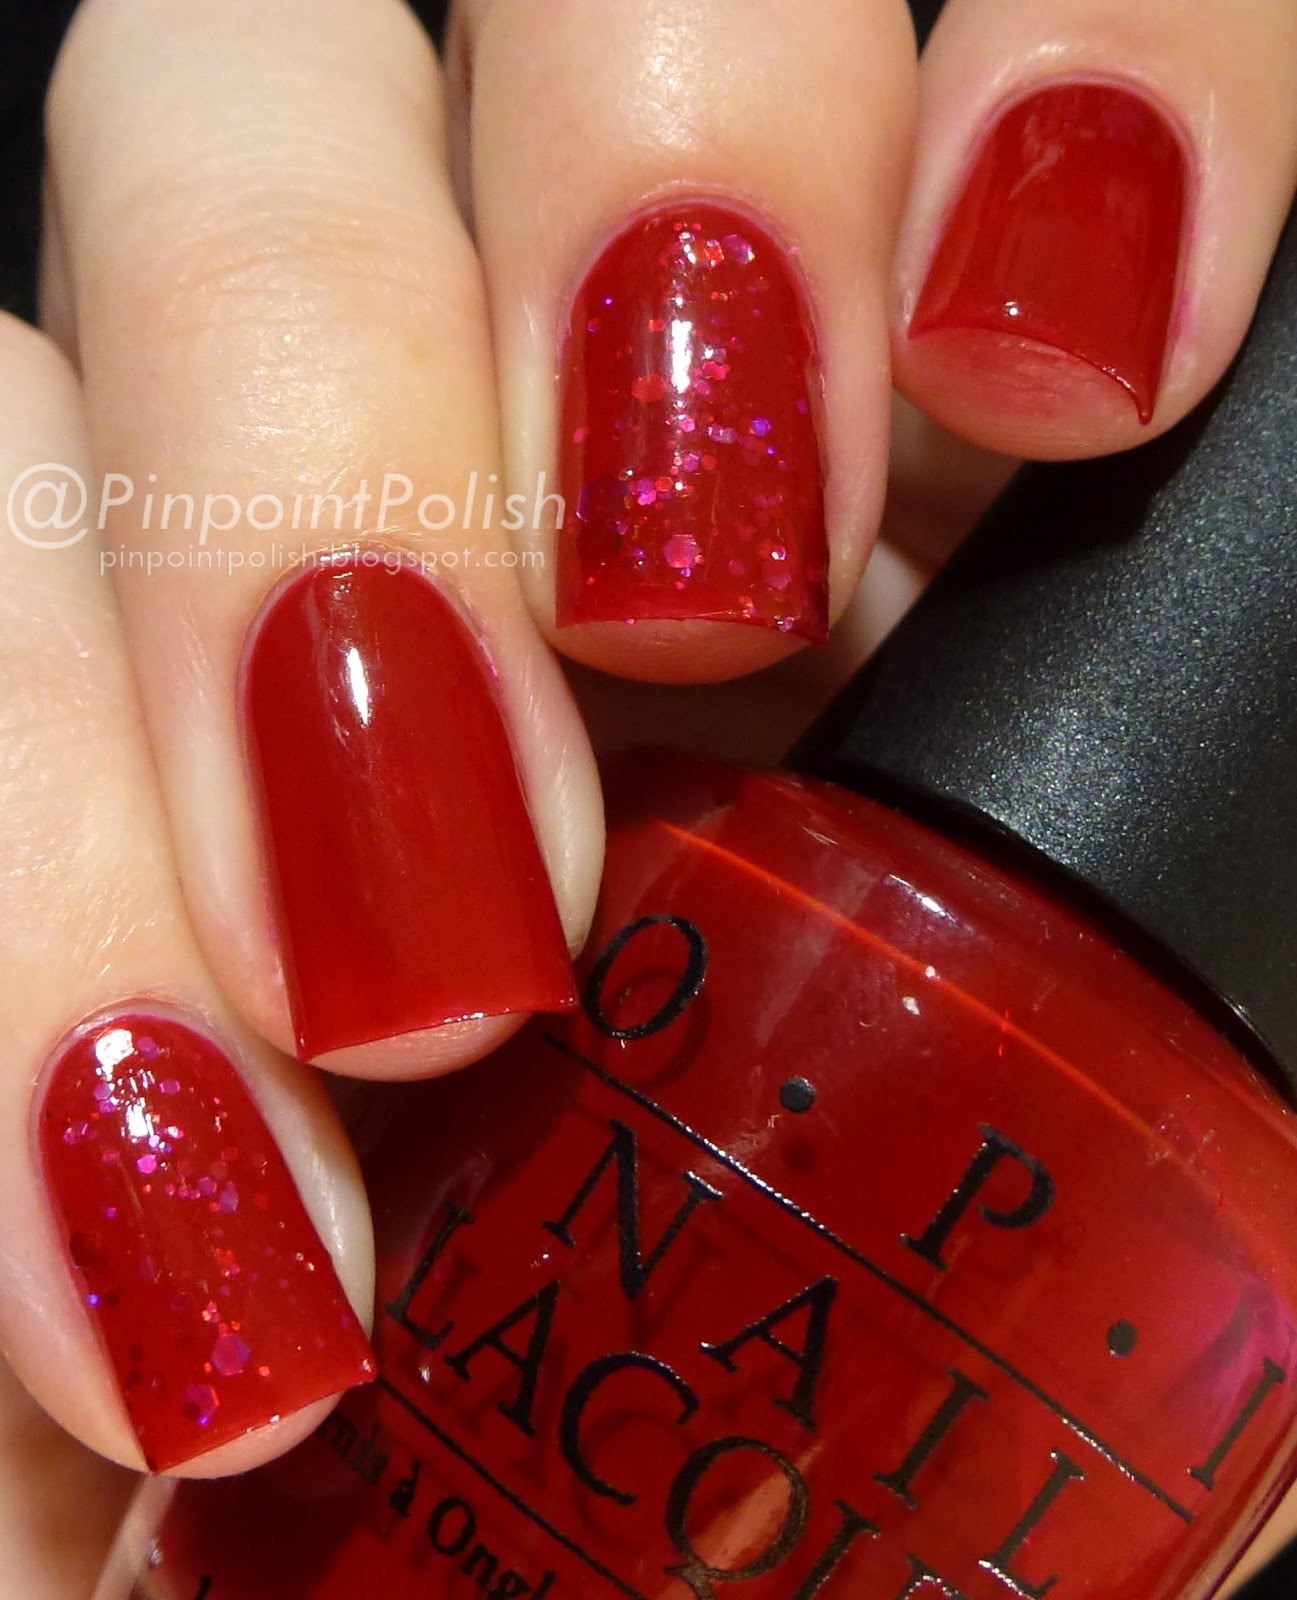 OPI Vodka & Caviar, CrowsToes Maxxed Out, Jelly sandwich, swatch